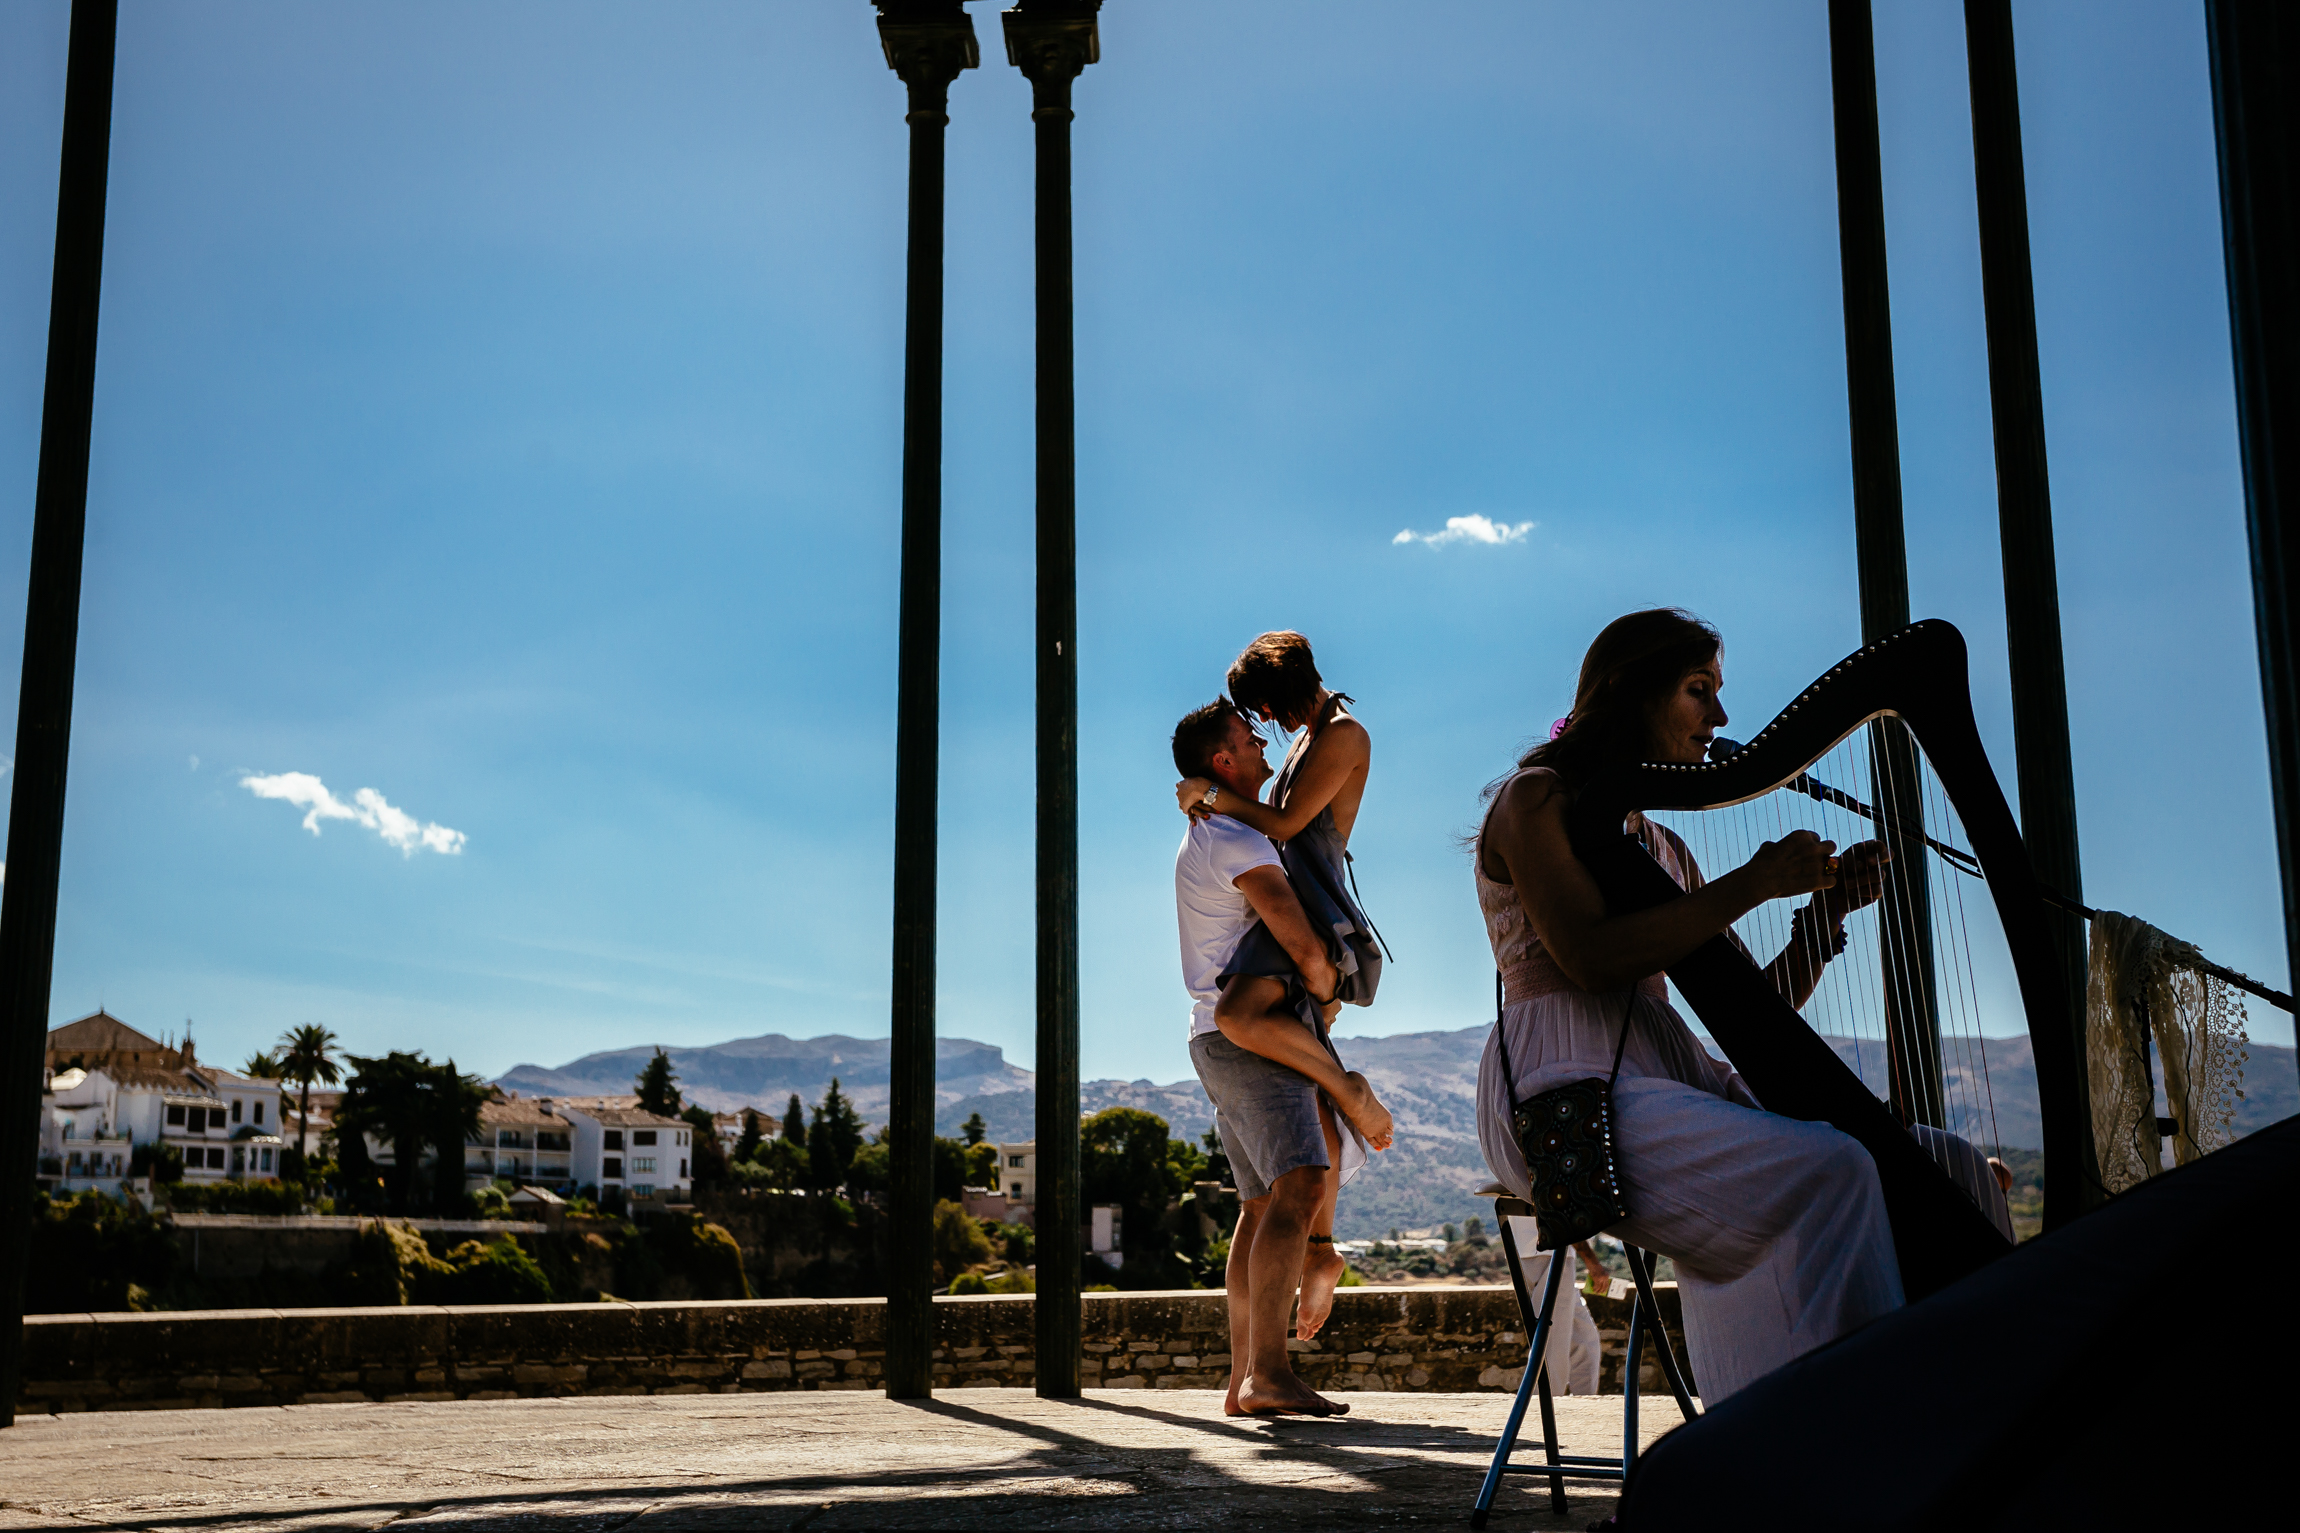 Louise & Ant - Destination engagement photography marbella sansom photography-11